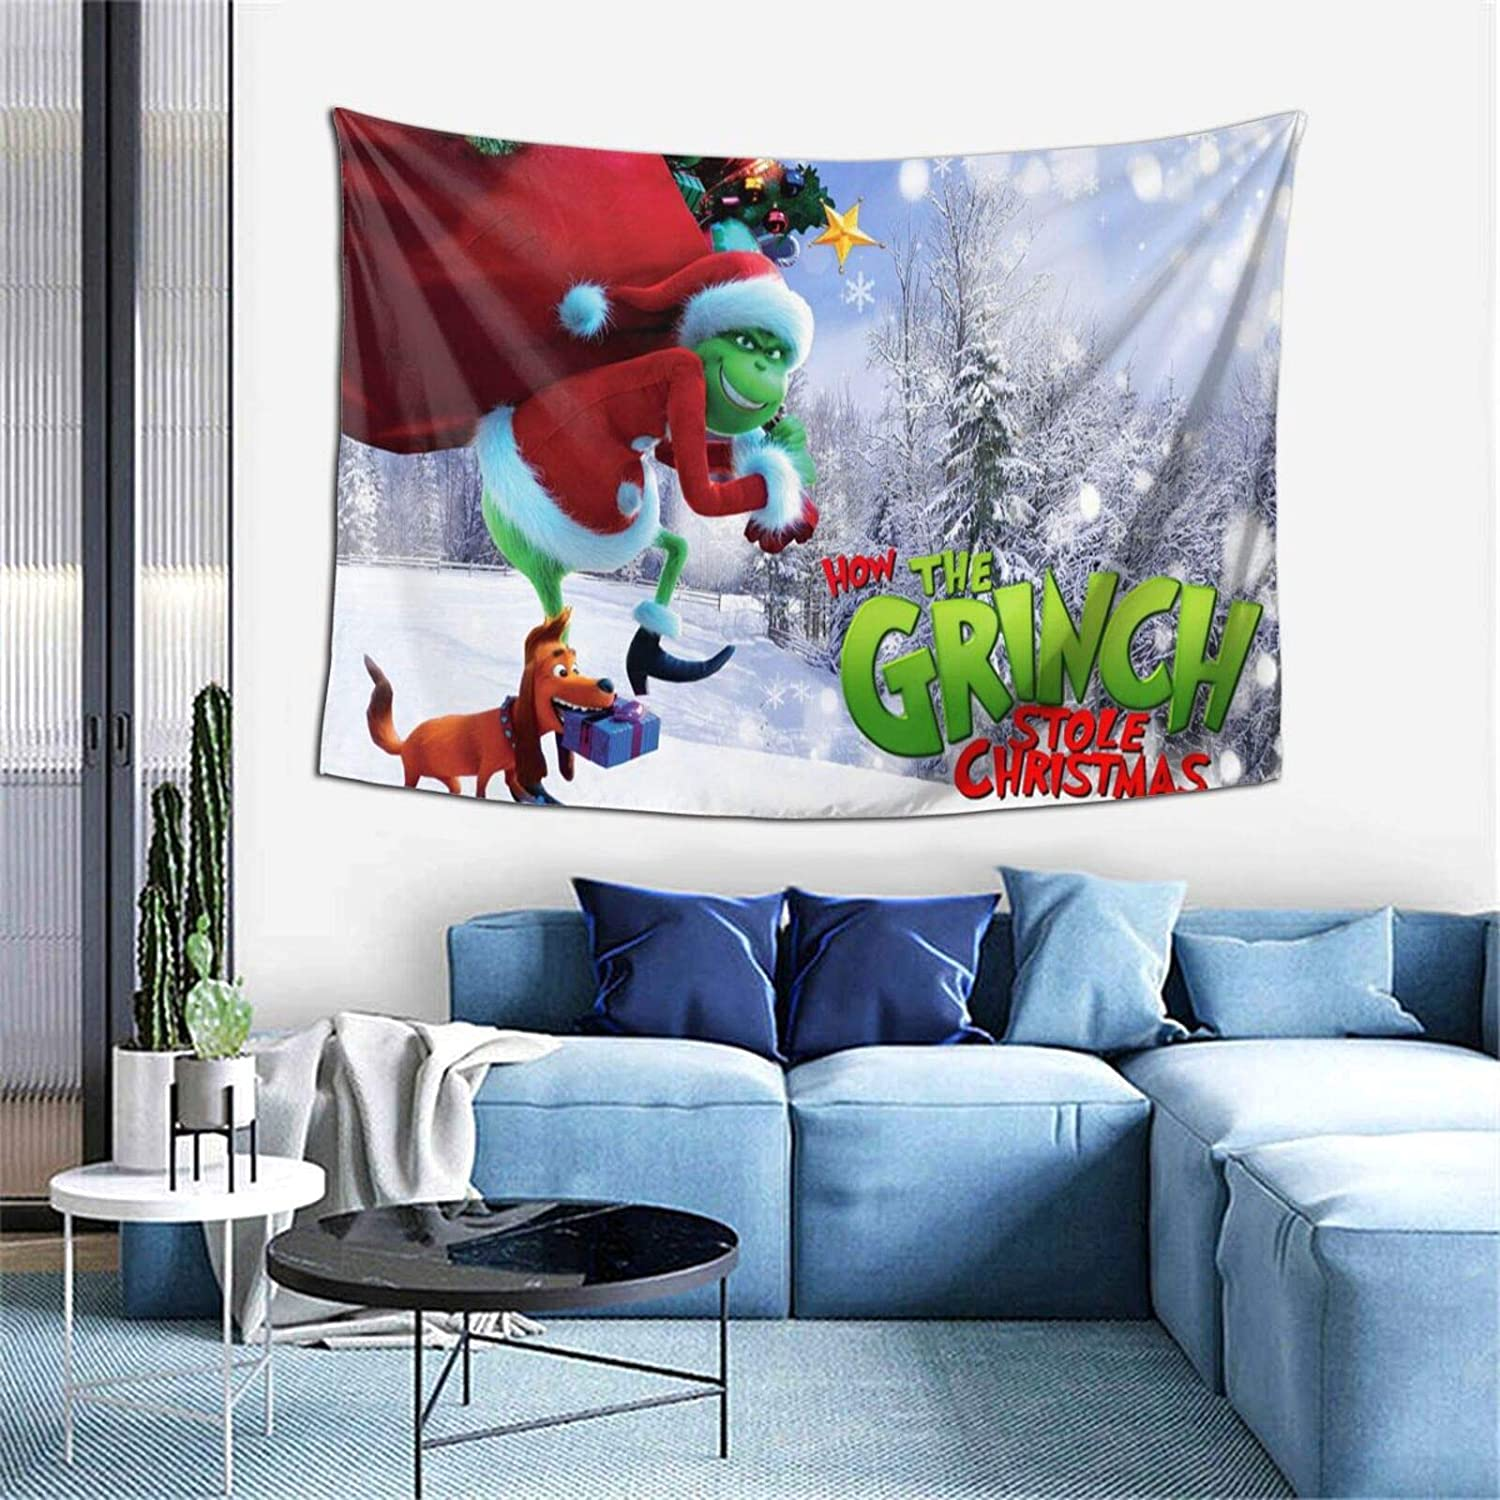 Bestrgi Fashion Office Print Fabric Tapestry The Artwork G-r-i-n-ch Decor Wall Art Blanket Tapestries Colorful Livingroom Bedroom Hall Dorm Living Room Hanging Bedding 60 x 40 inches Gift